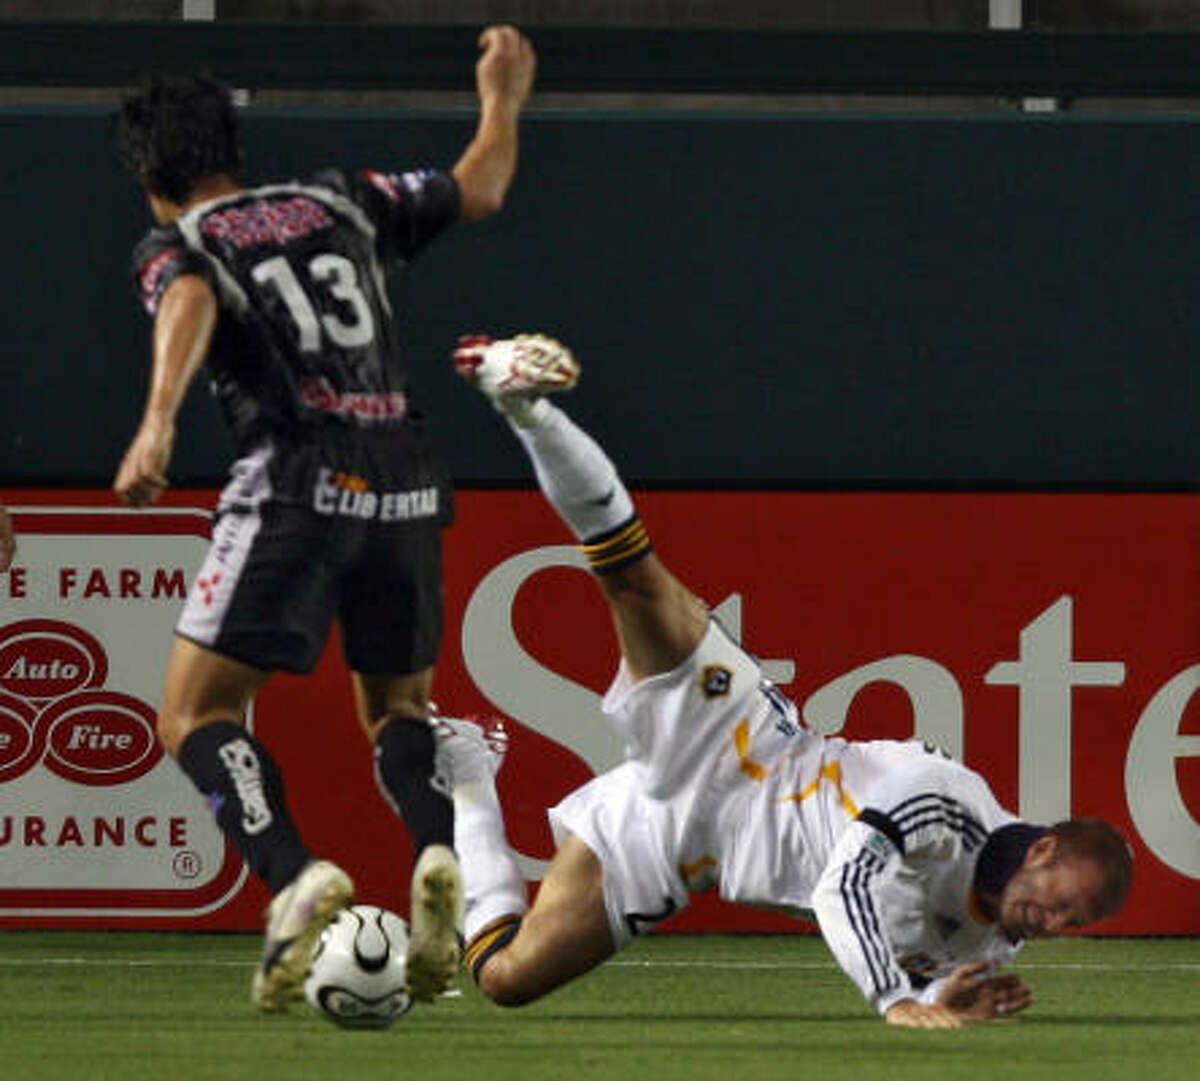 Los Angeles Galaxy midfielder David Beckham collides with Pachuca's Fernando Salazar (13) during the first half of Wednesday night's SuperLiga final at Carson, Calif. Beckham sprained his right knee on the play and had to leave the game in the 30th minute.